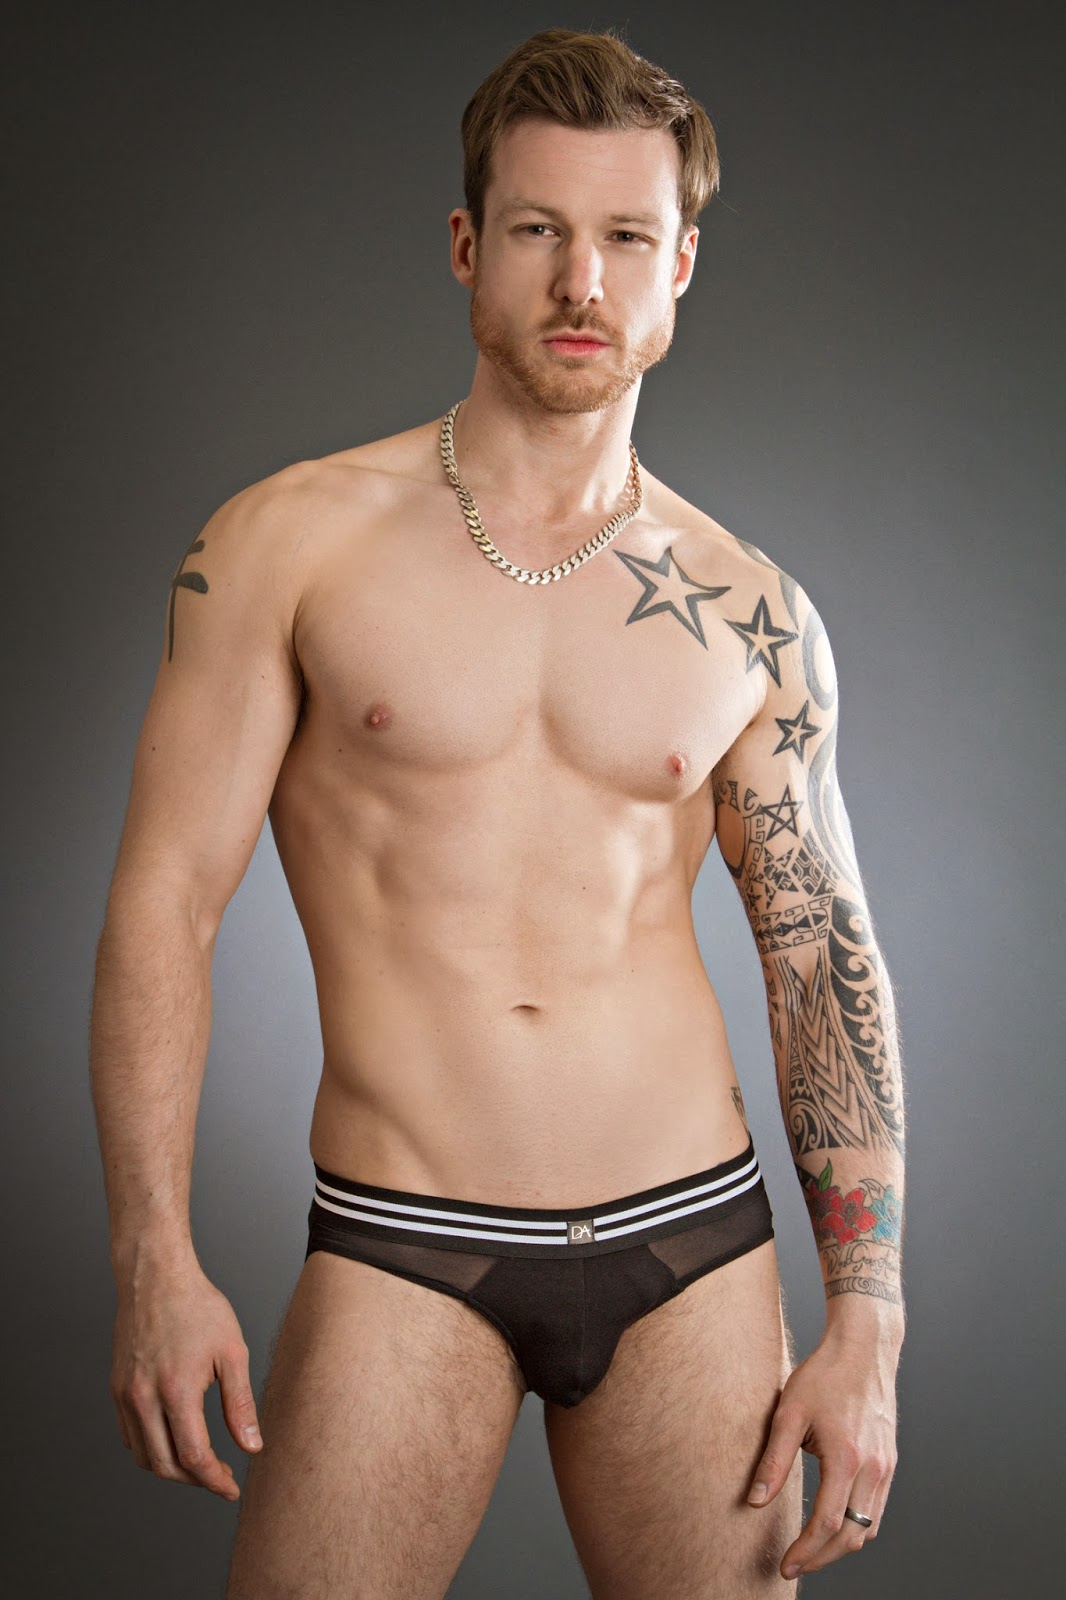 Best gay dating site in castle pines north co